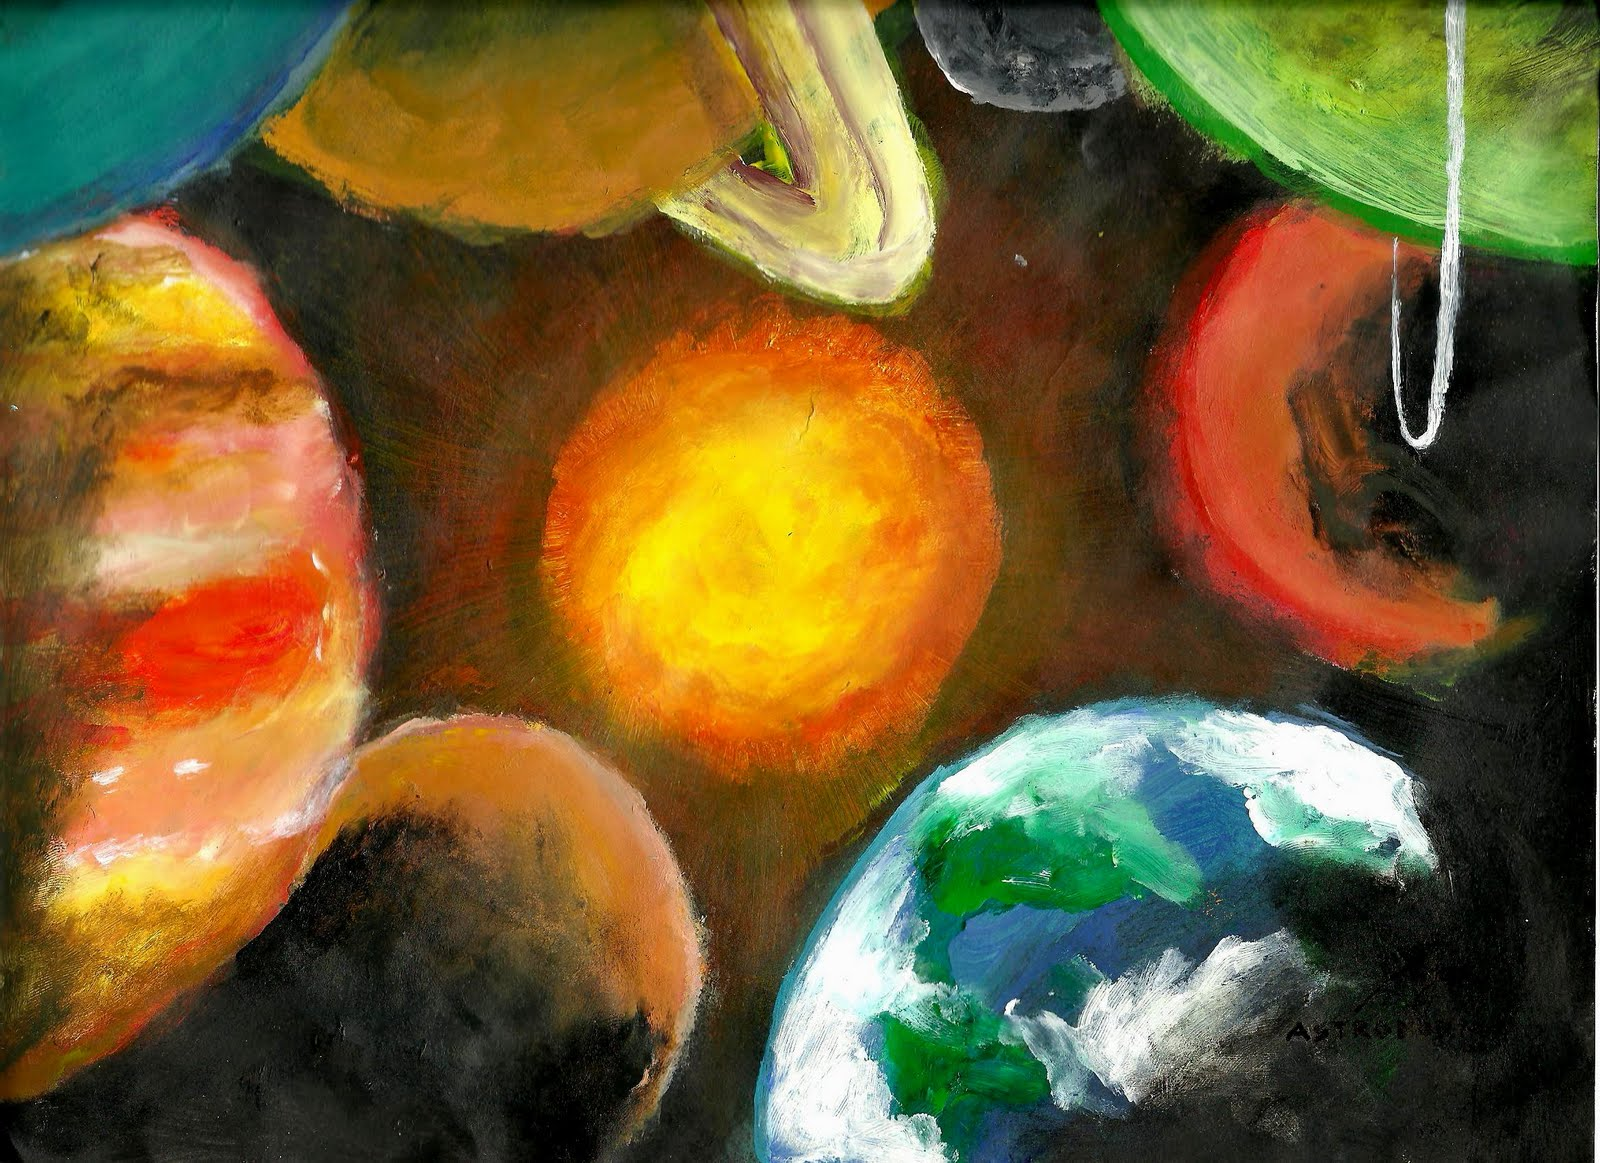 solar system paintings - photo #34